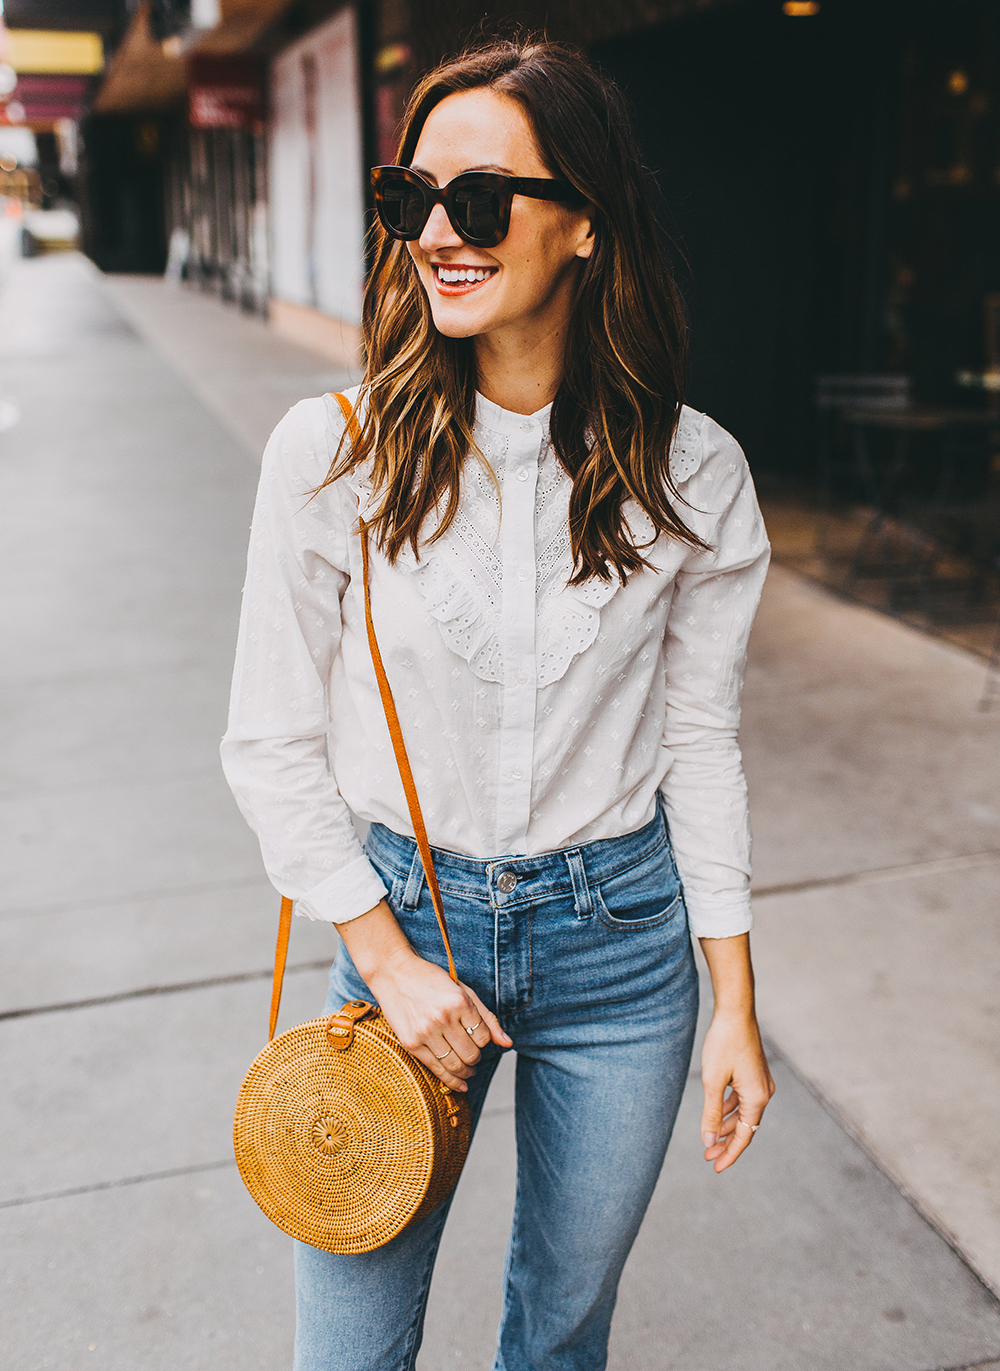 livvyland-blog-olivia-watson-austin-texas-fashion-style-blogger-sezane-white-eyelet-blouse-kick-flare-jeans-simple-spring-outfit-8